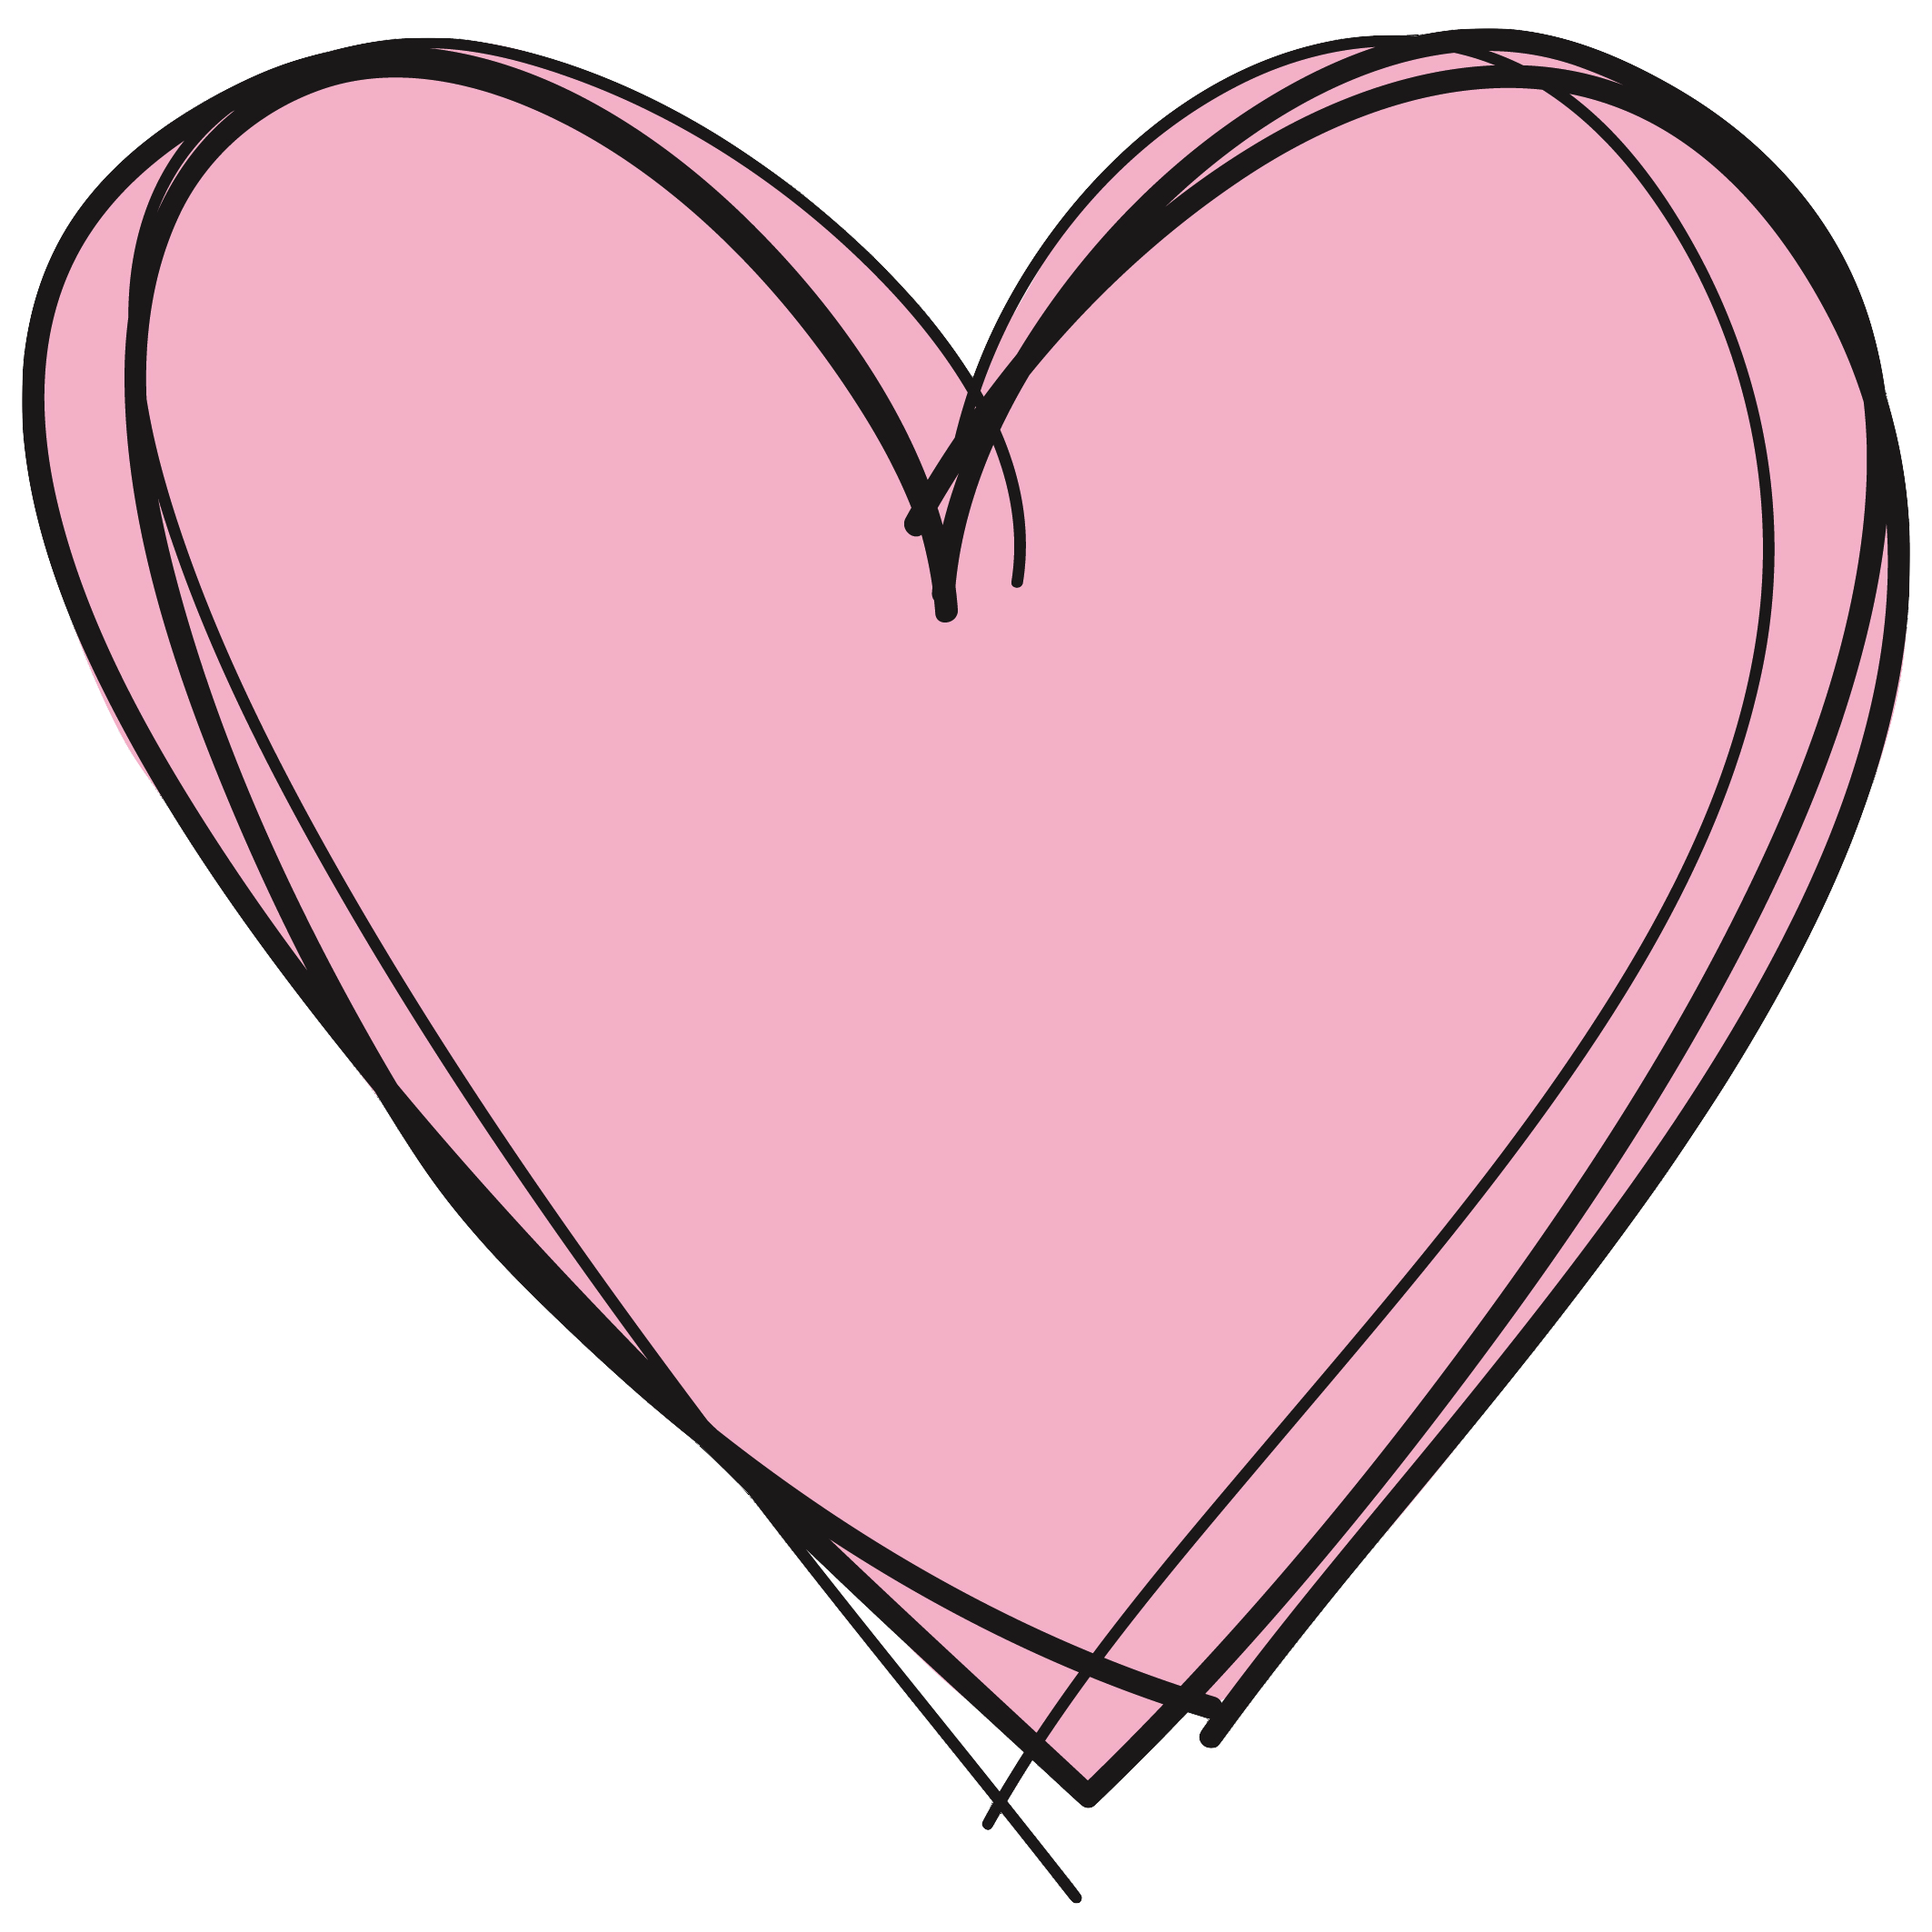 2126x2126 Drawn Hearts Png Tumblr